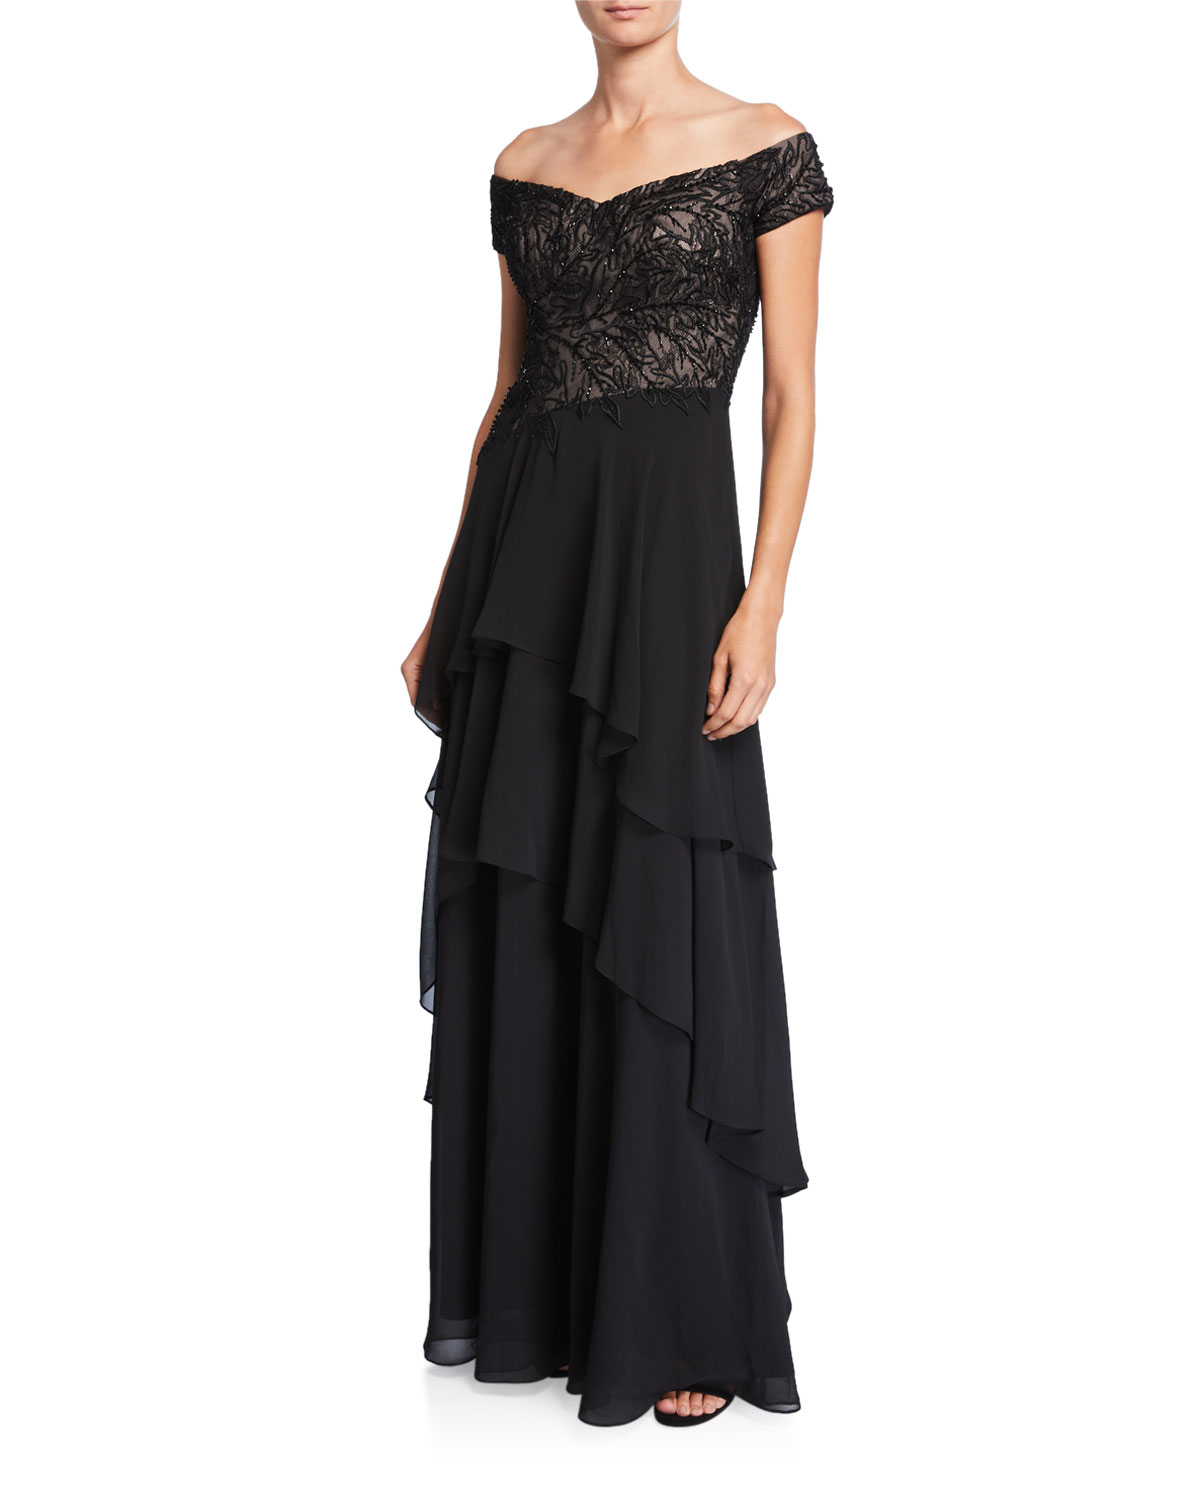 Rickie Freeman For Teri Jon Skirts BEADED OFF-THE-SHOULDER TIERED SKIRT GOWN